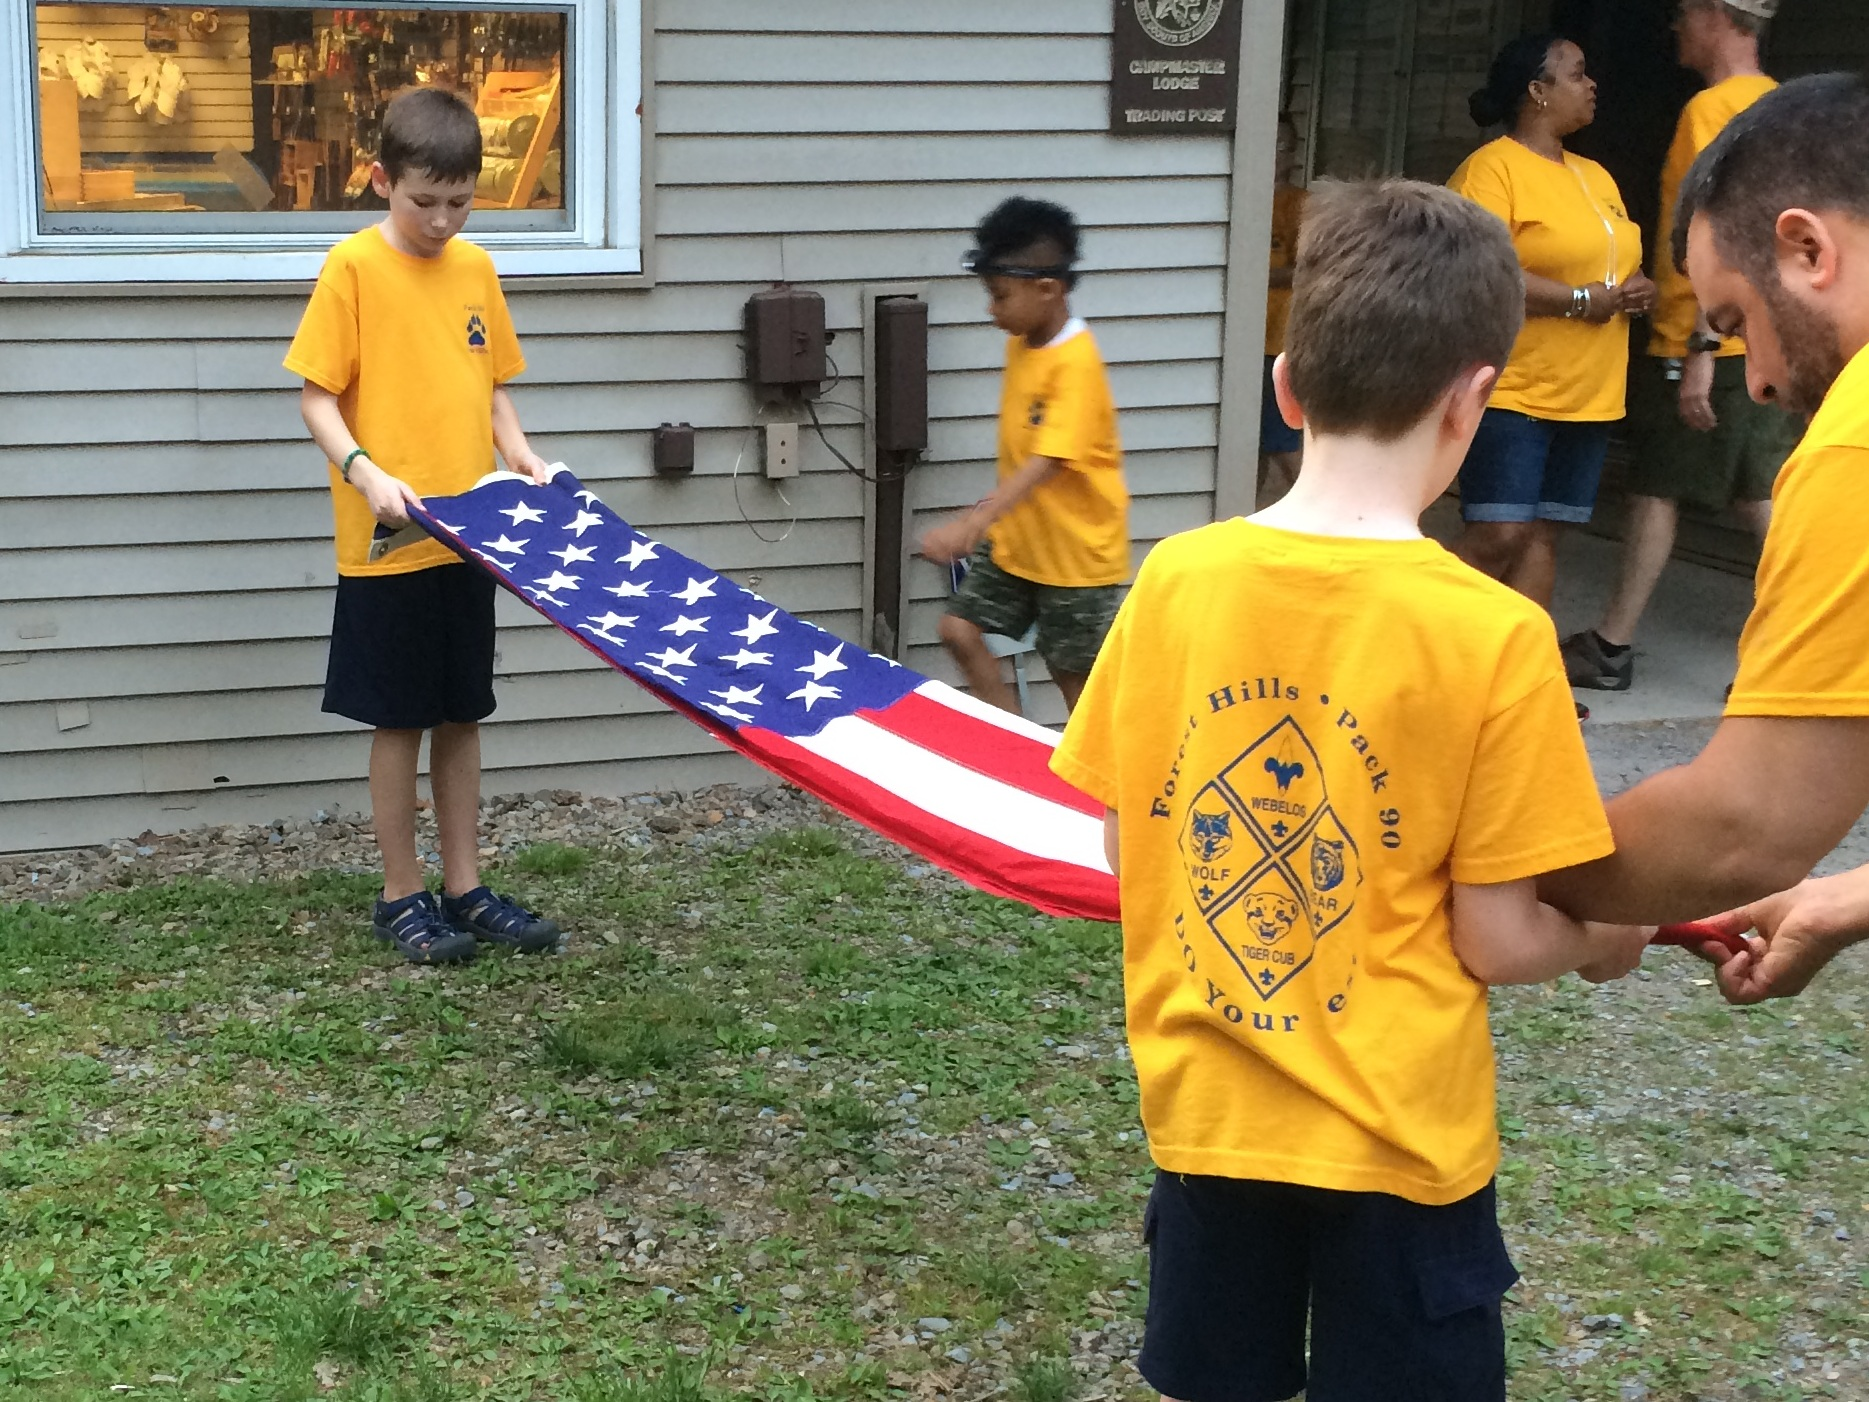 Pack 90 Webelos show reverence during a flag ceremony at Summer Camp.